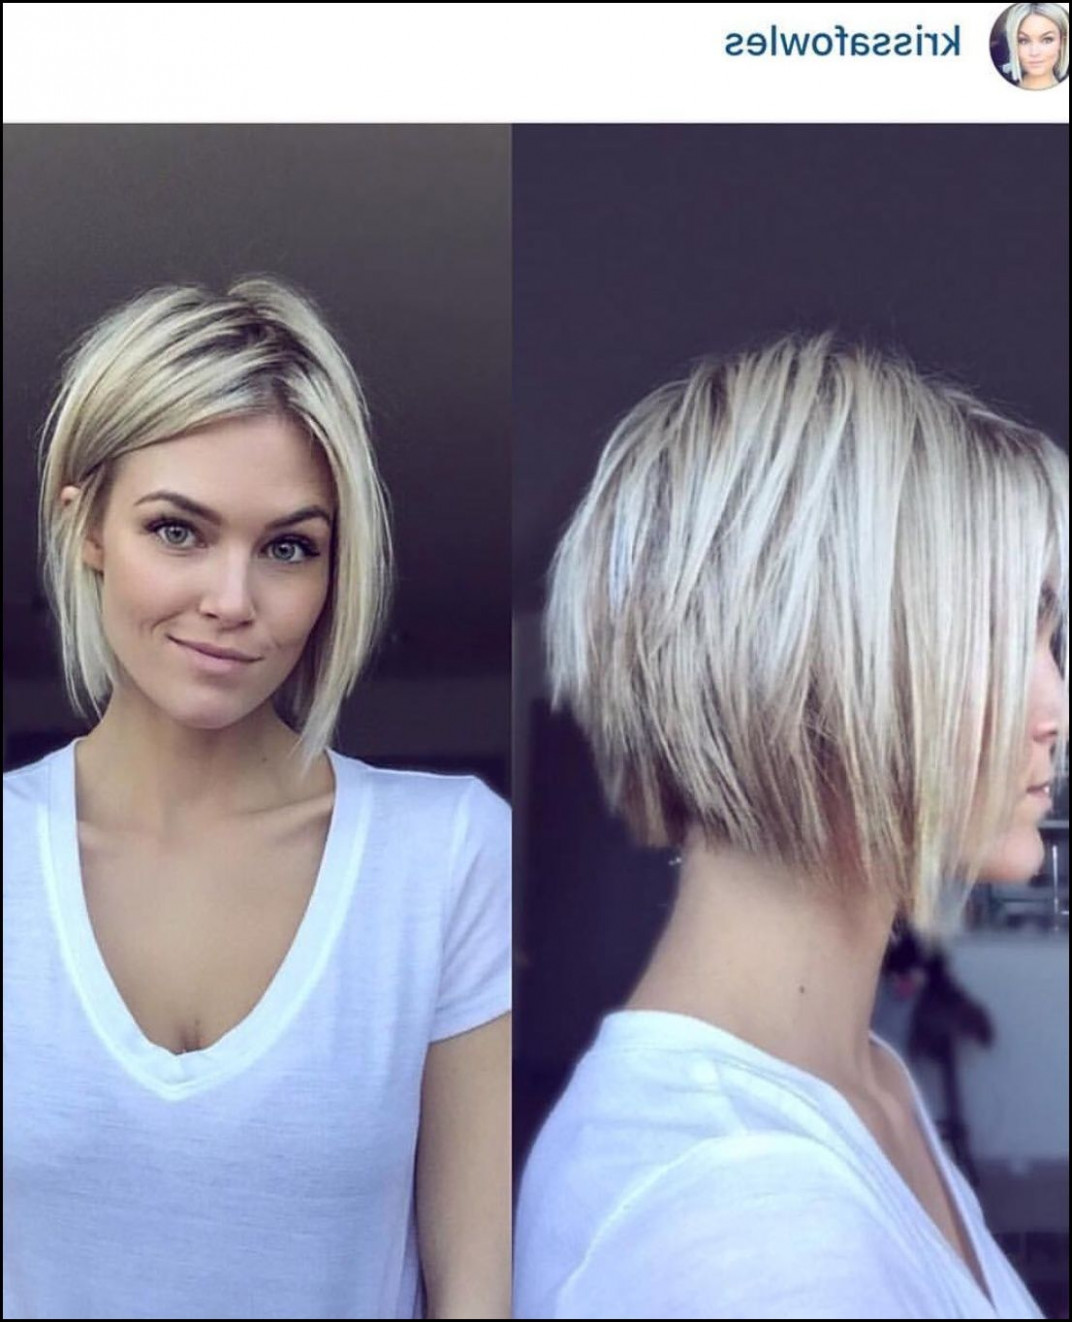 Pin on hair layered hairstyles short in front long in back